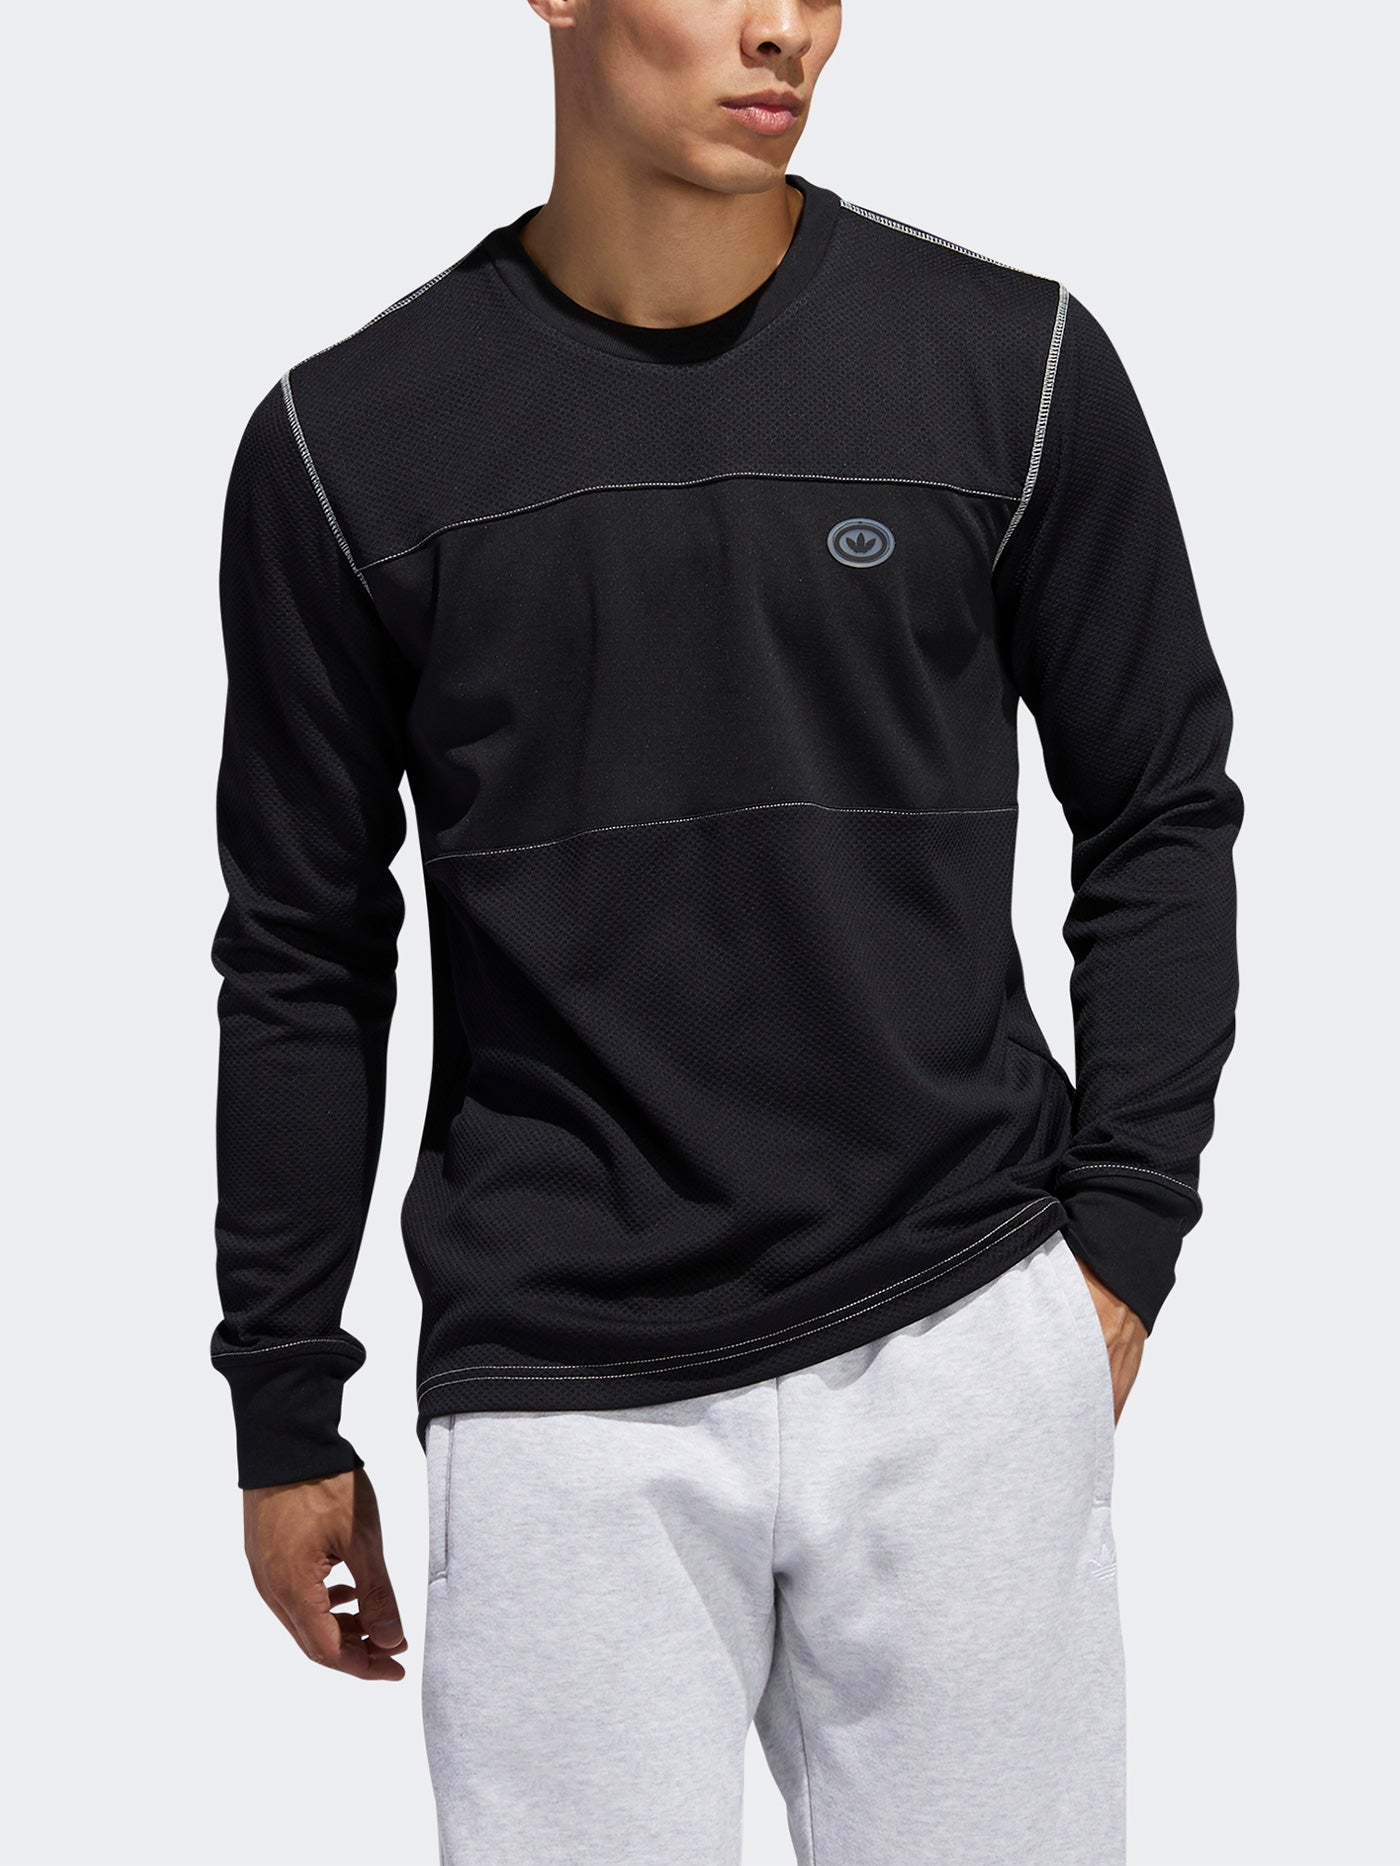 Primera Layer Black/Off White Long Sleeve T-Shirt